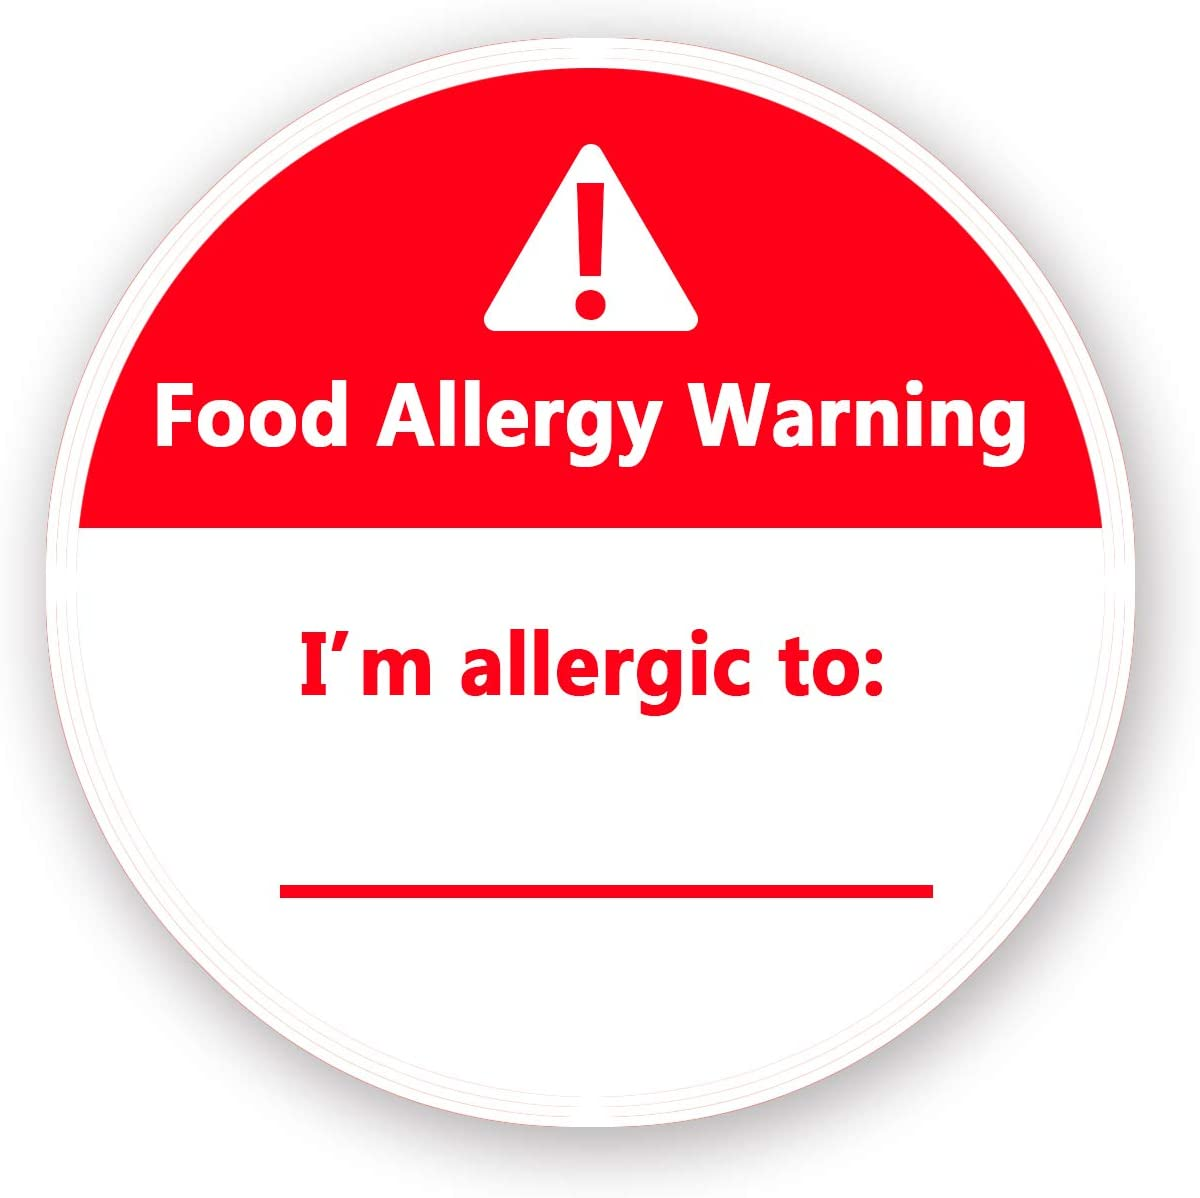 Allergies Stickers,Writable Allergy Labels,I'm Allergic to Stickers,1.5 Inch Total 500 Per Roll